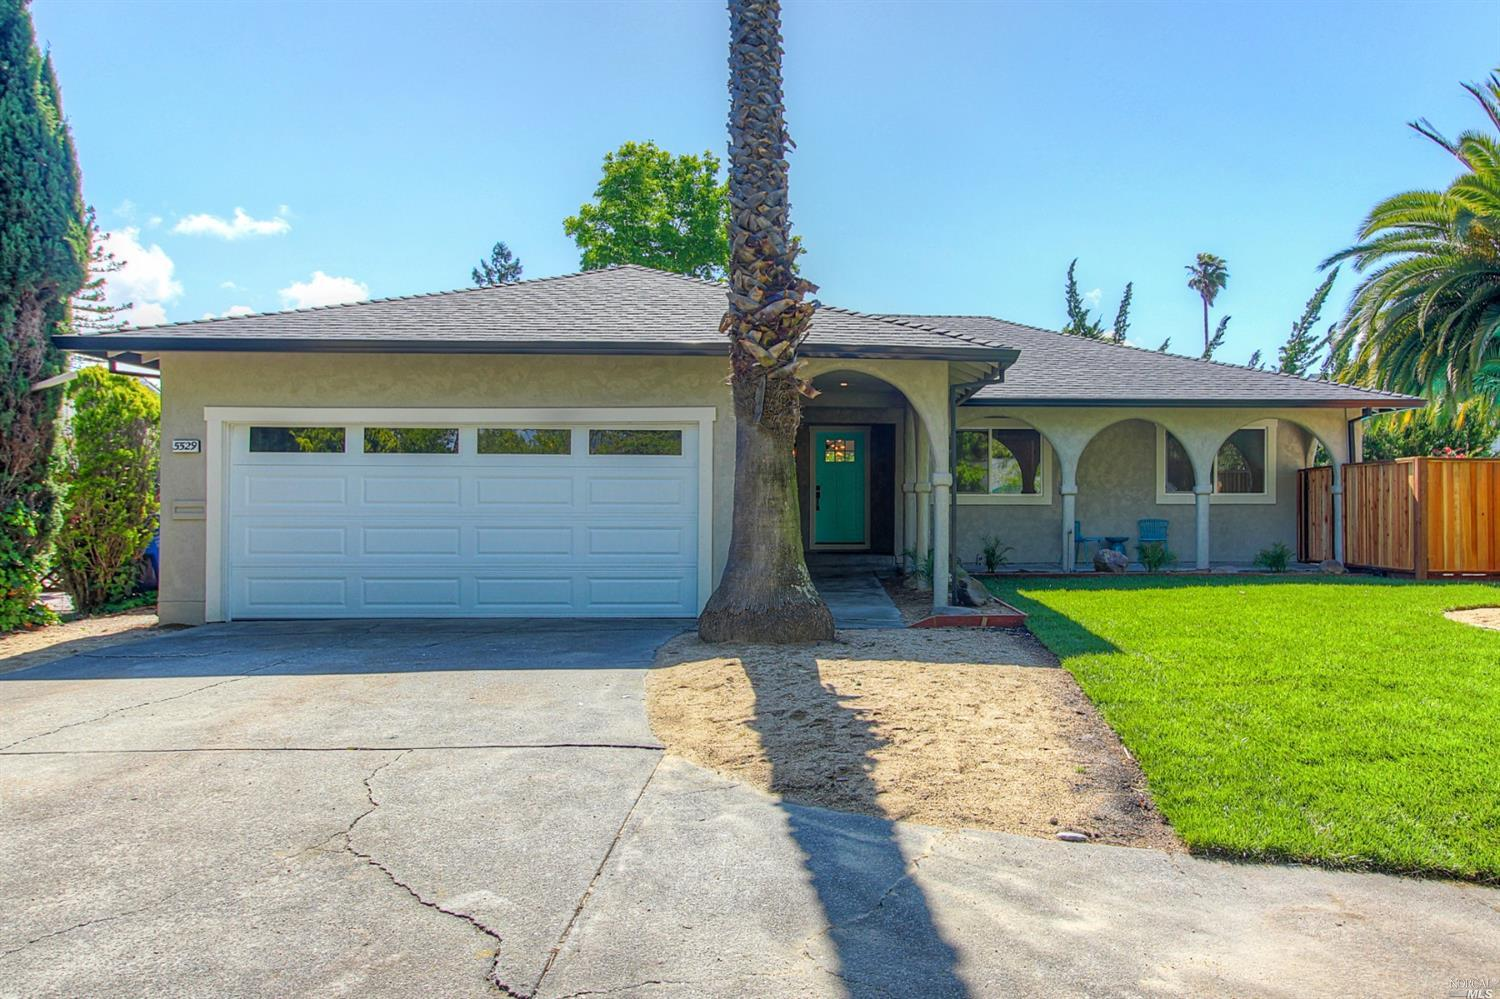 5529 Country Club Drive, Rohnert Park - $49K PRICE DROP